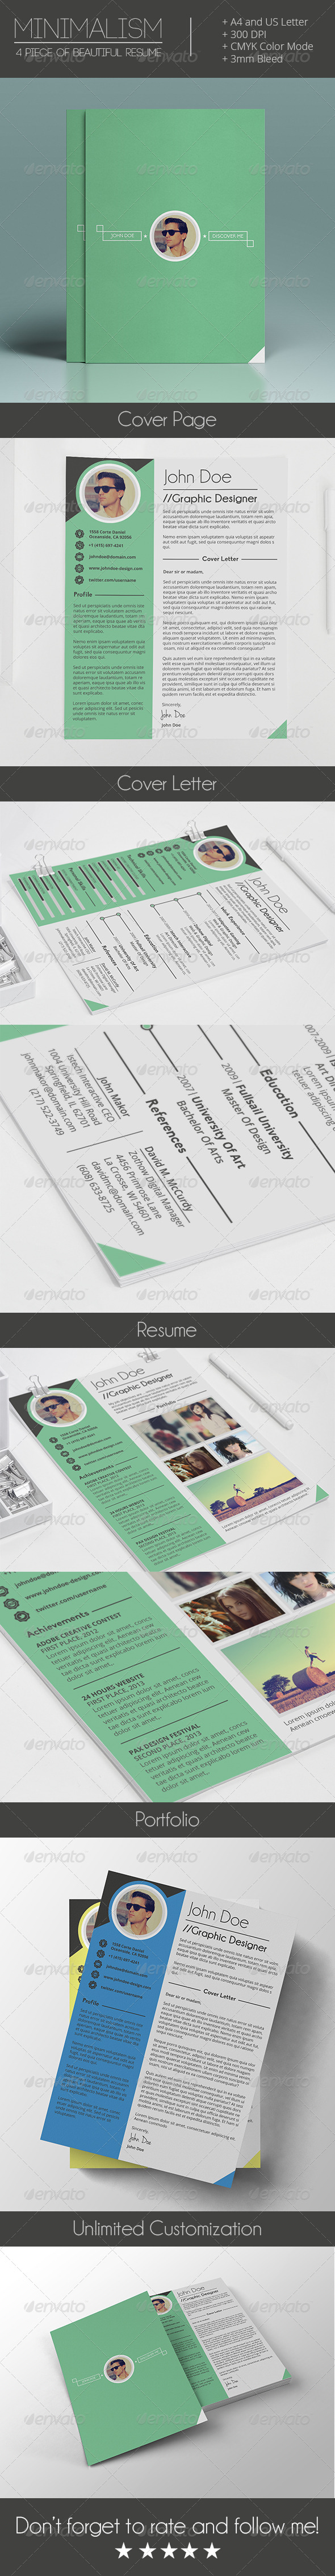 GraphicRiver Mimalism 4 Pieces of Ultra Clean Resume 7481462